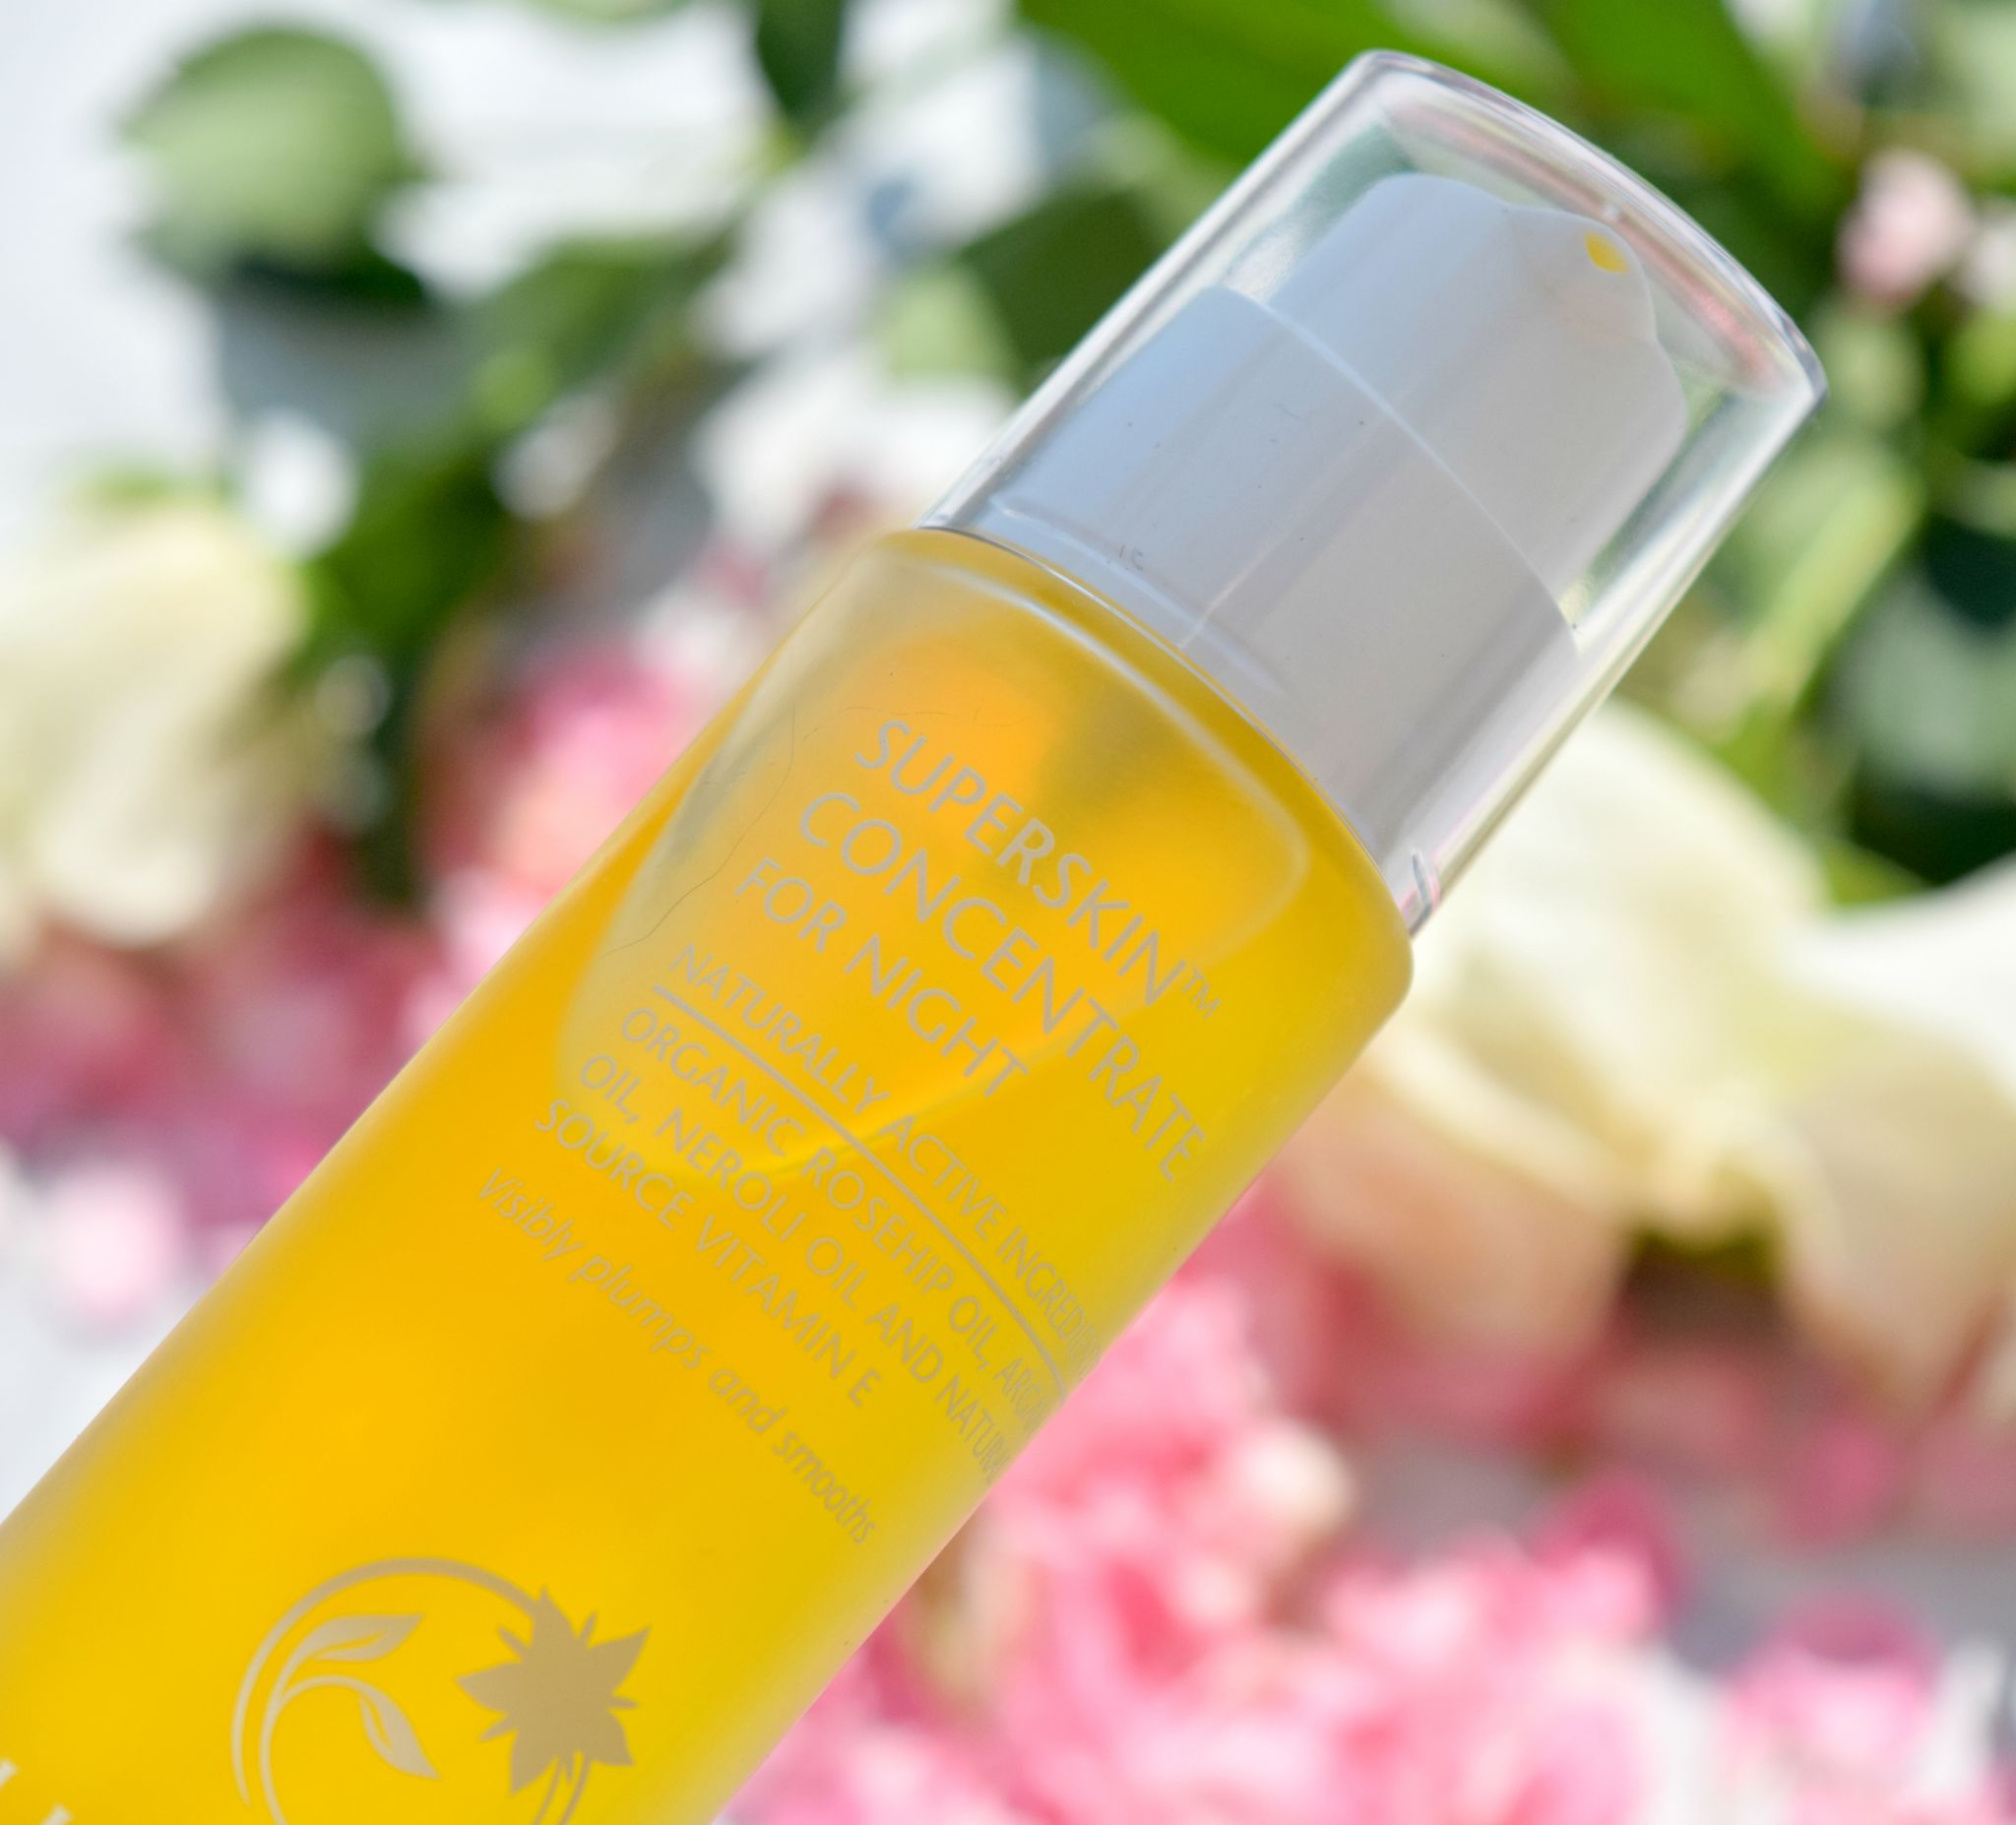 Liz Earl Superskin Concentrate for Night 1